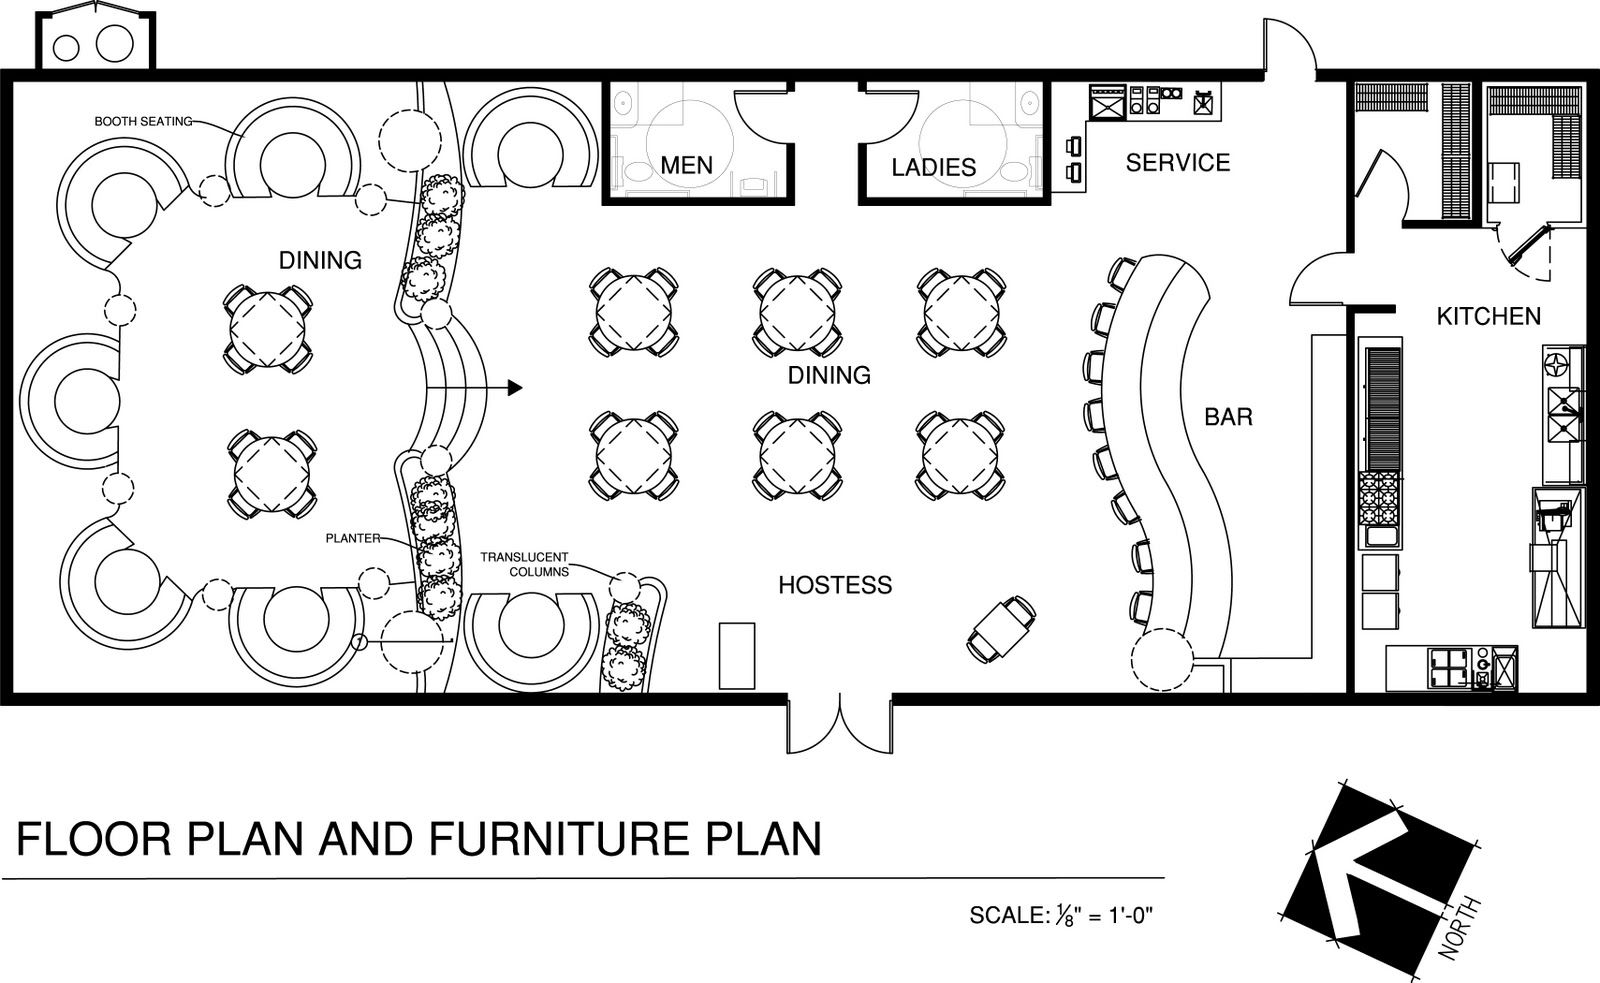 Design restaurant floor plan fresh furniture idea upper for Blueprints of restaurant kitchen designs